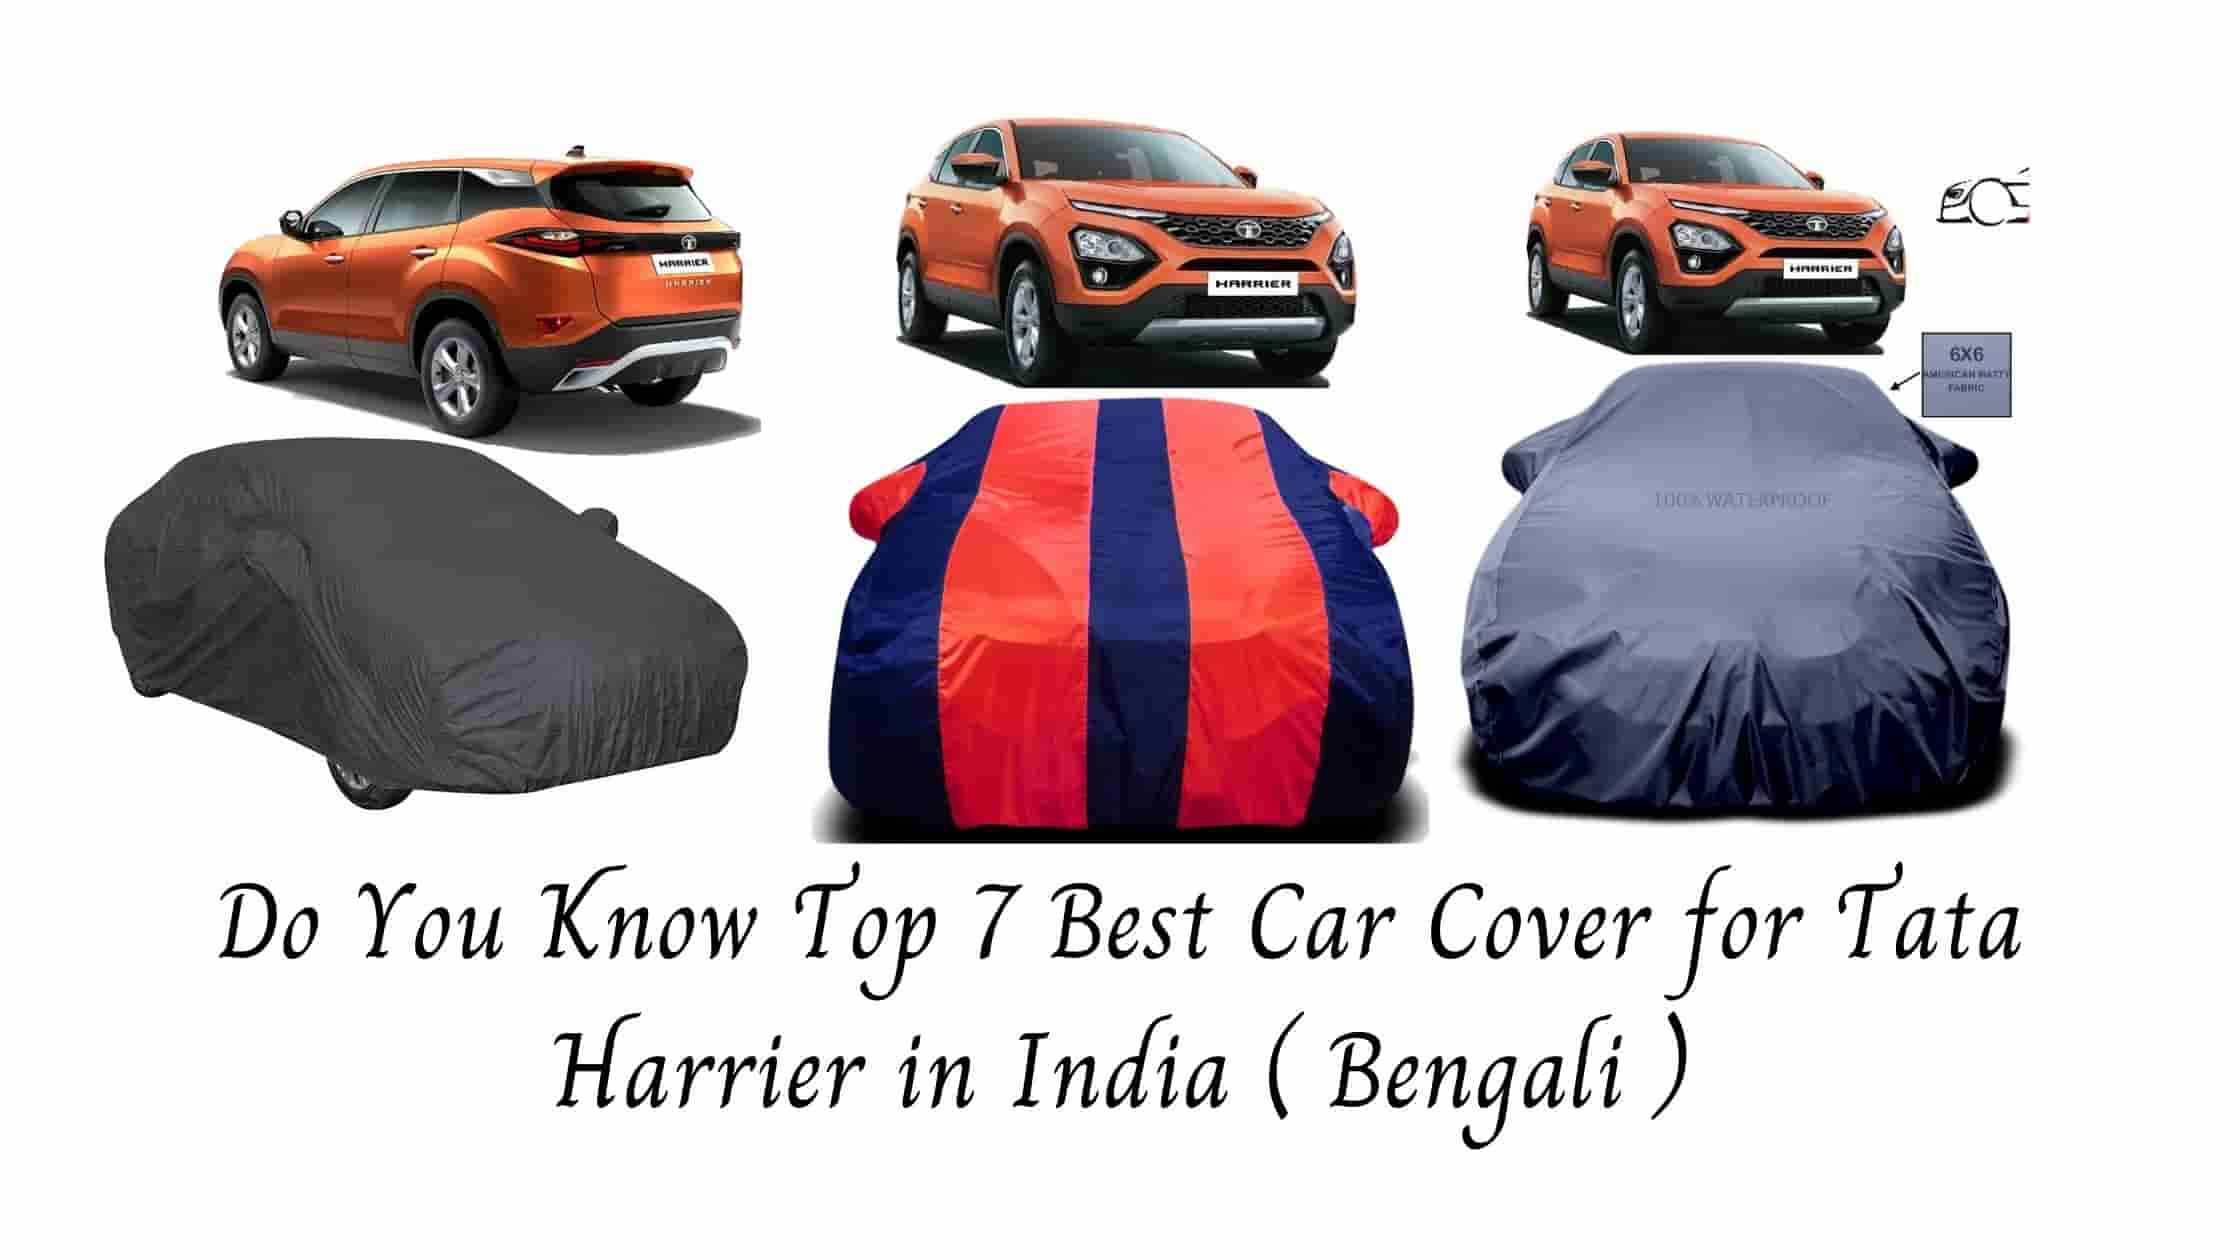 Do You Know Top 7 Best Car Cover for Tata Harrier in India ( Bengali )